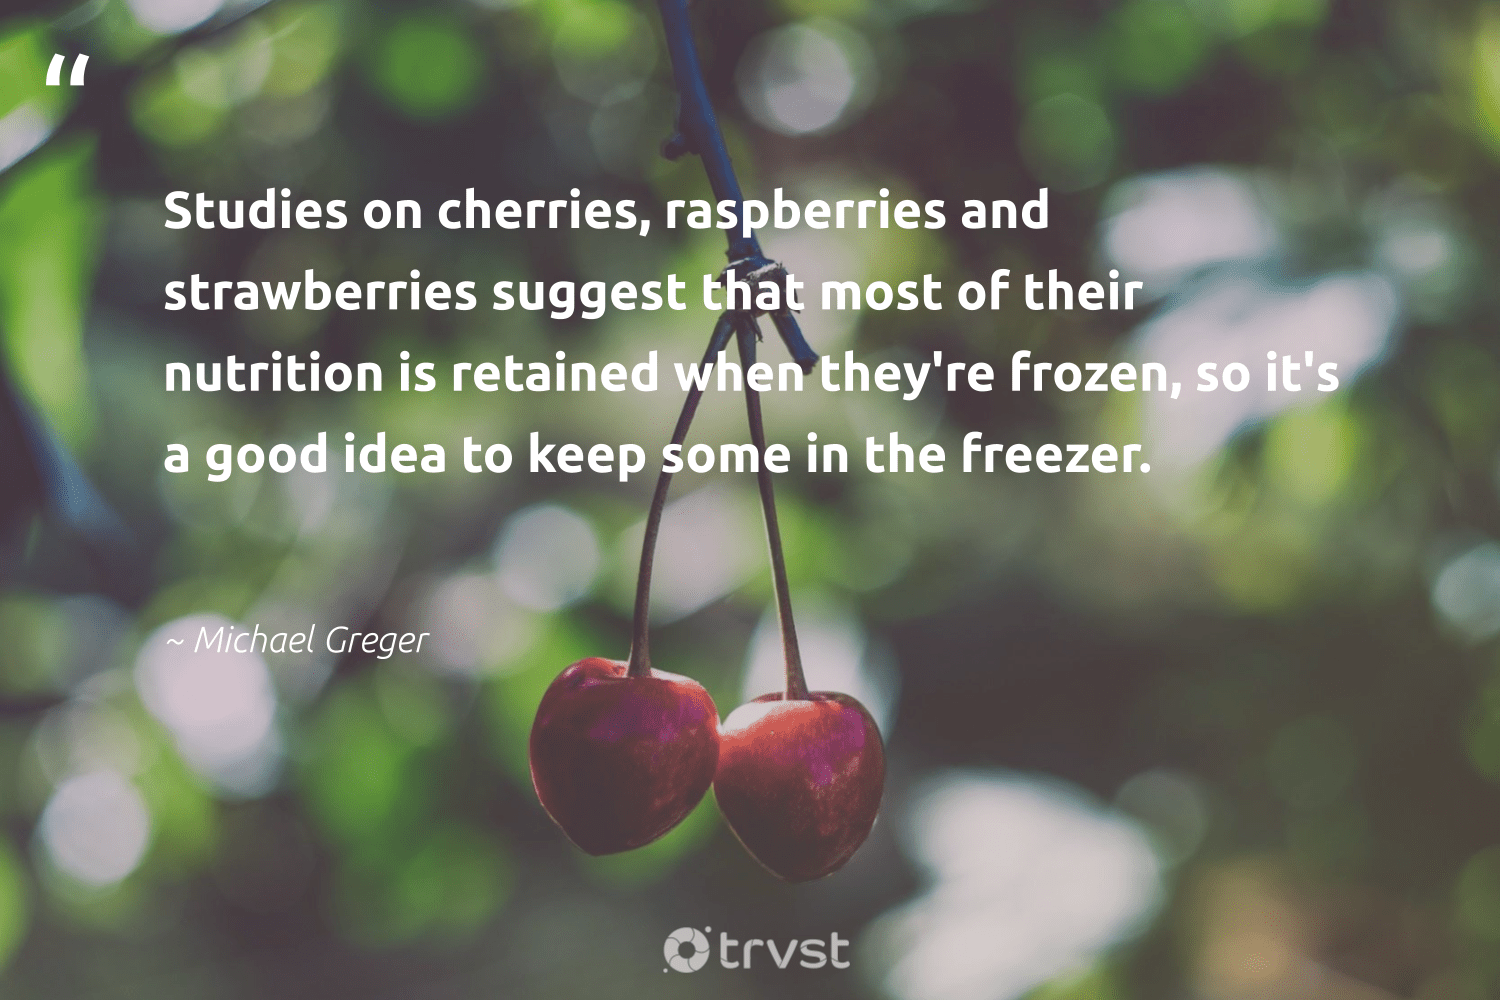 """Studies on cherries, raspberries and strawberries suggest that most of their nutrition is retained when they're frozen, so it's a good idea to keep some in the freezer.""  - Michael Greger #trvst #quotes #eatclean #nutrition #health #togetherwecan #dogood #healthyeating #nevergiveup #begreat #dosomething #balance"